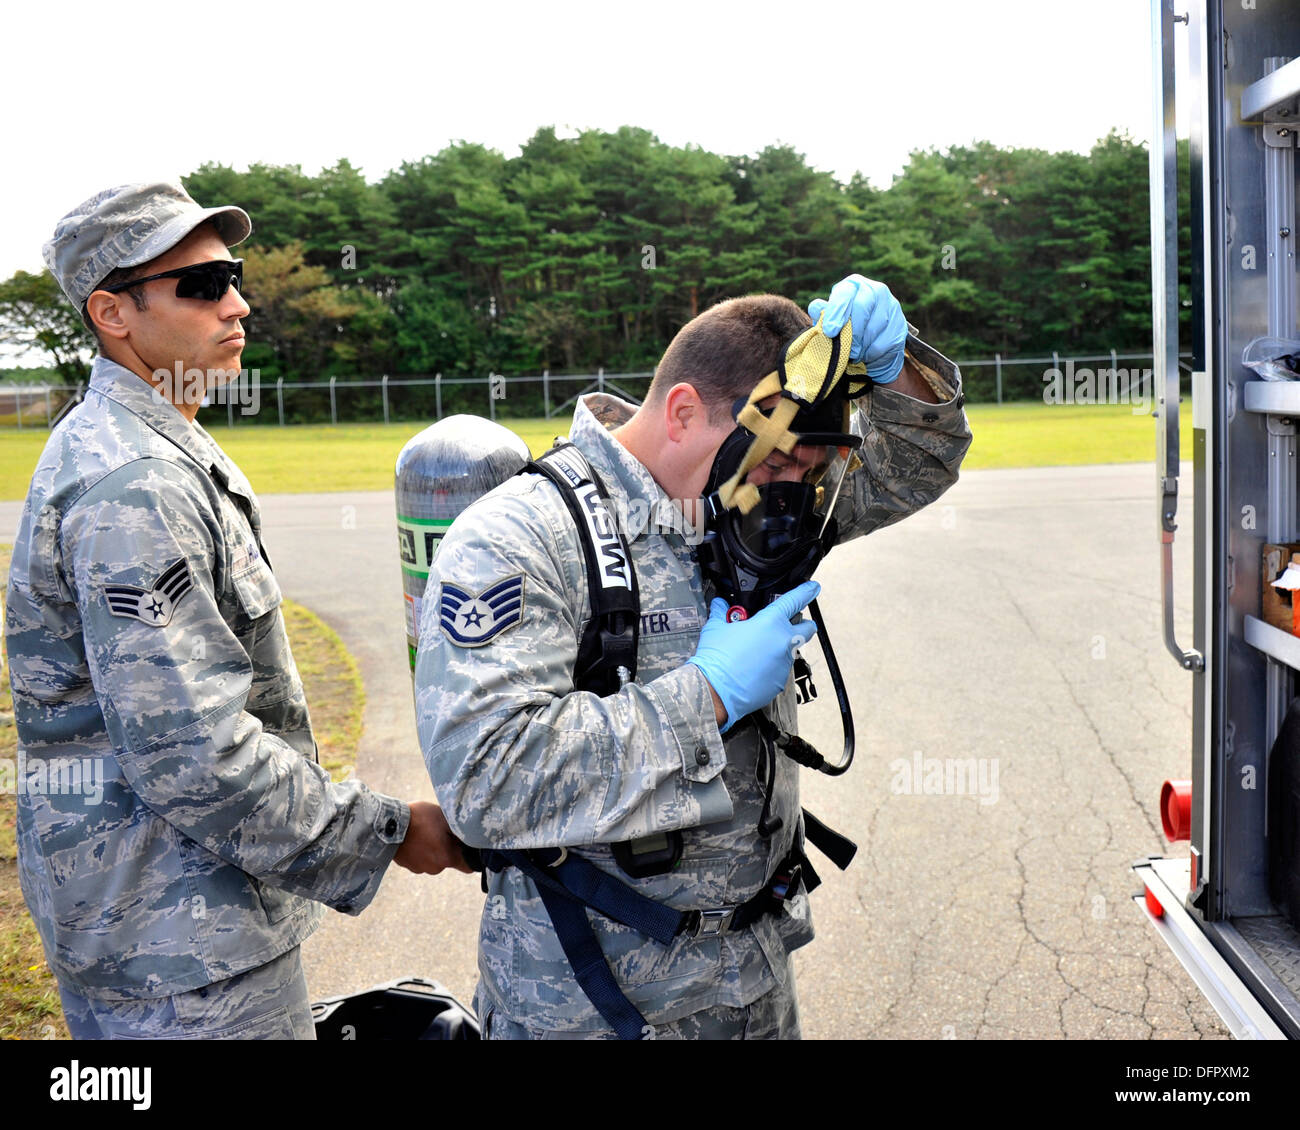 MISAWA AIR BASE, Japan (Sept. 26, 2013) Senior Airman William Holliday, left, originally from Quincy, Ill., assists Staff Sgt. J - Stock Image